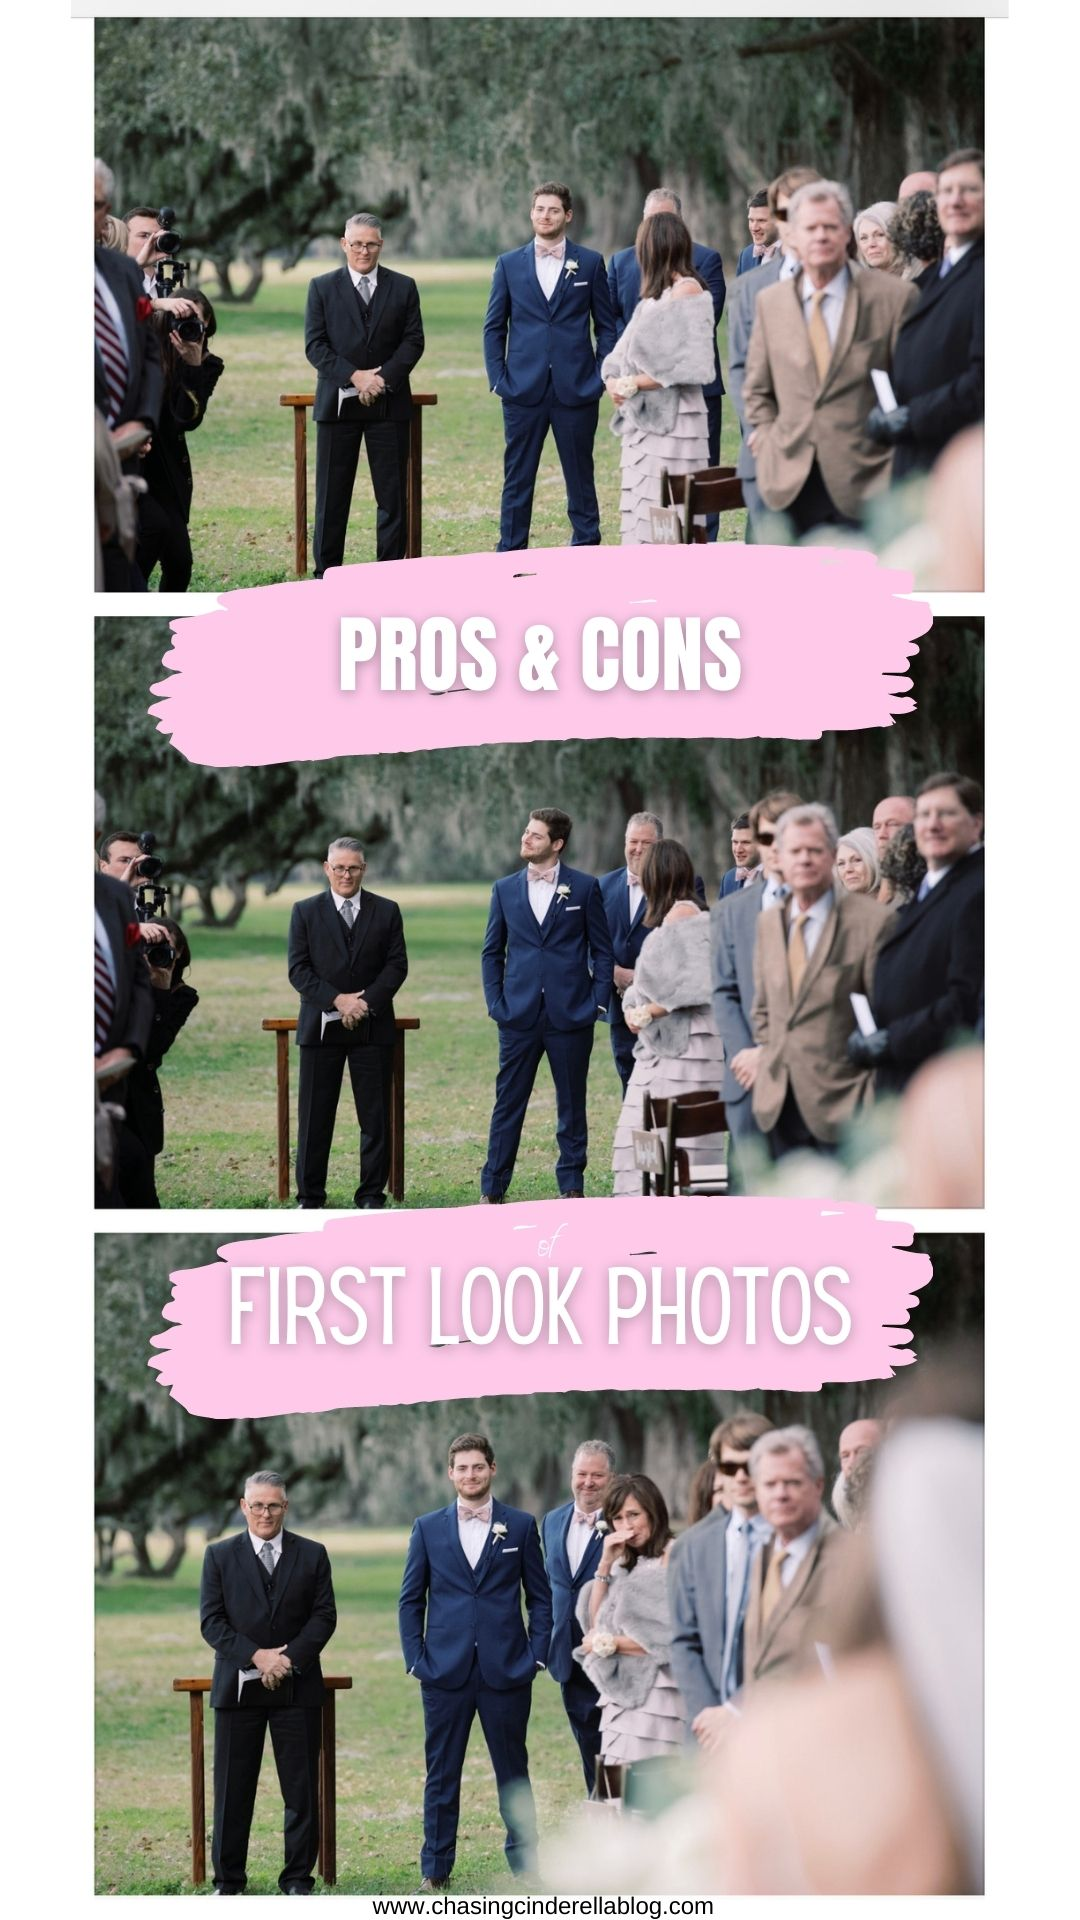 Should You Do A First Look At Your Wedding? - Chasing Cinderella